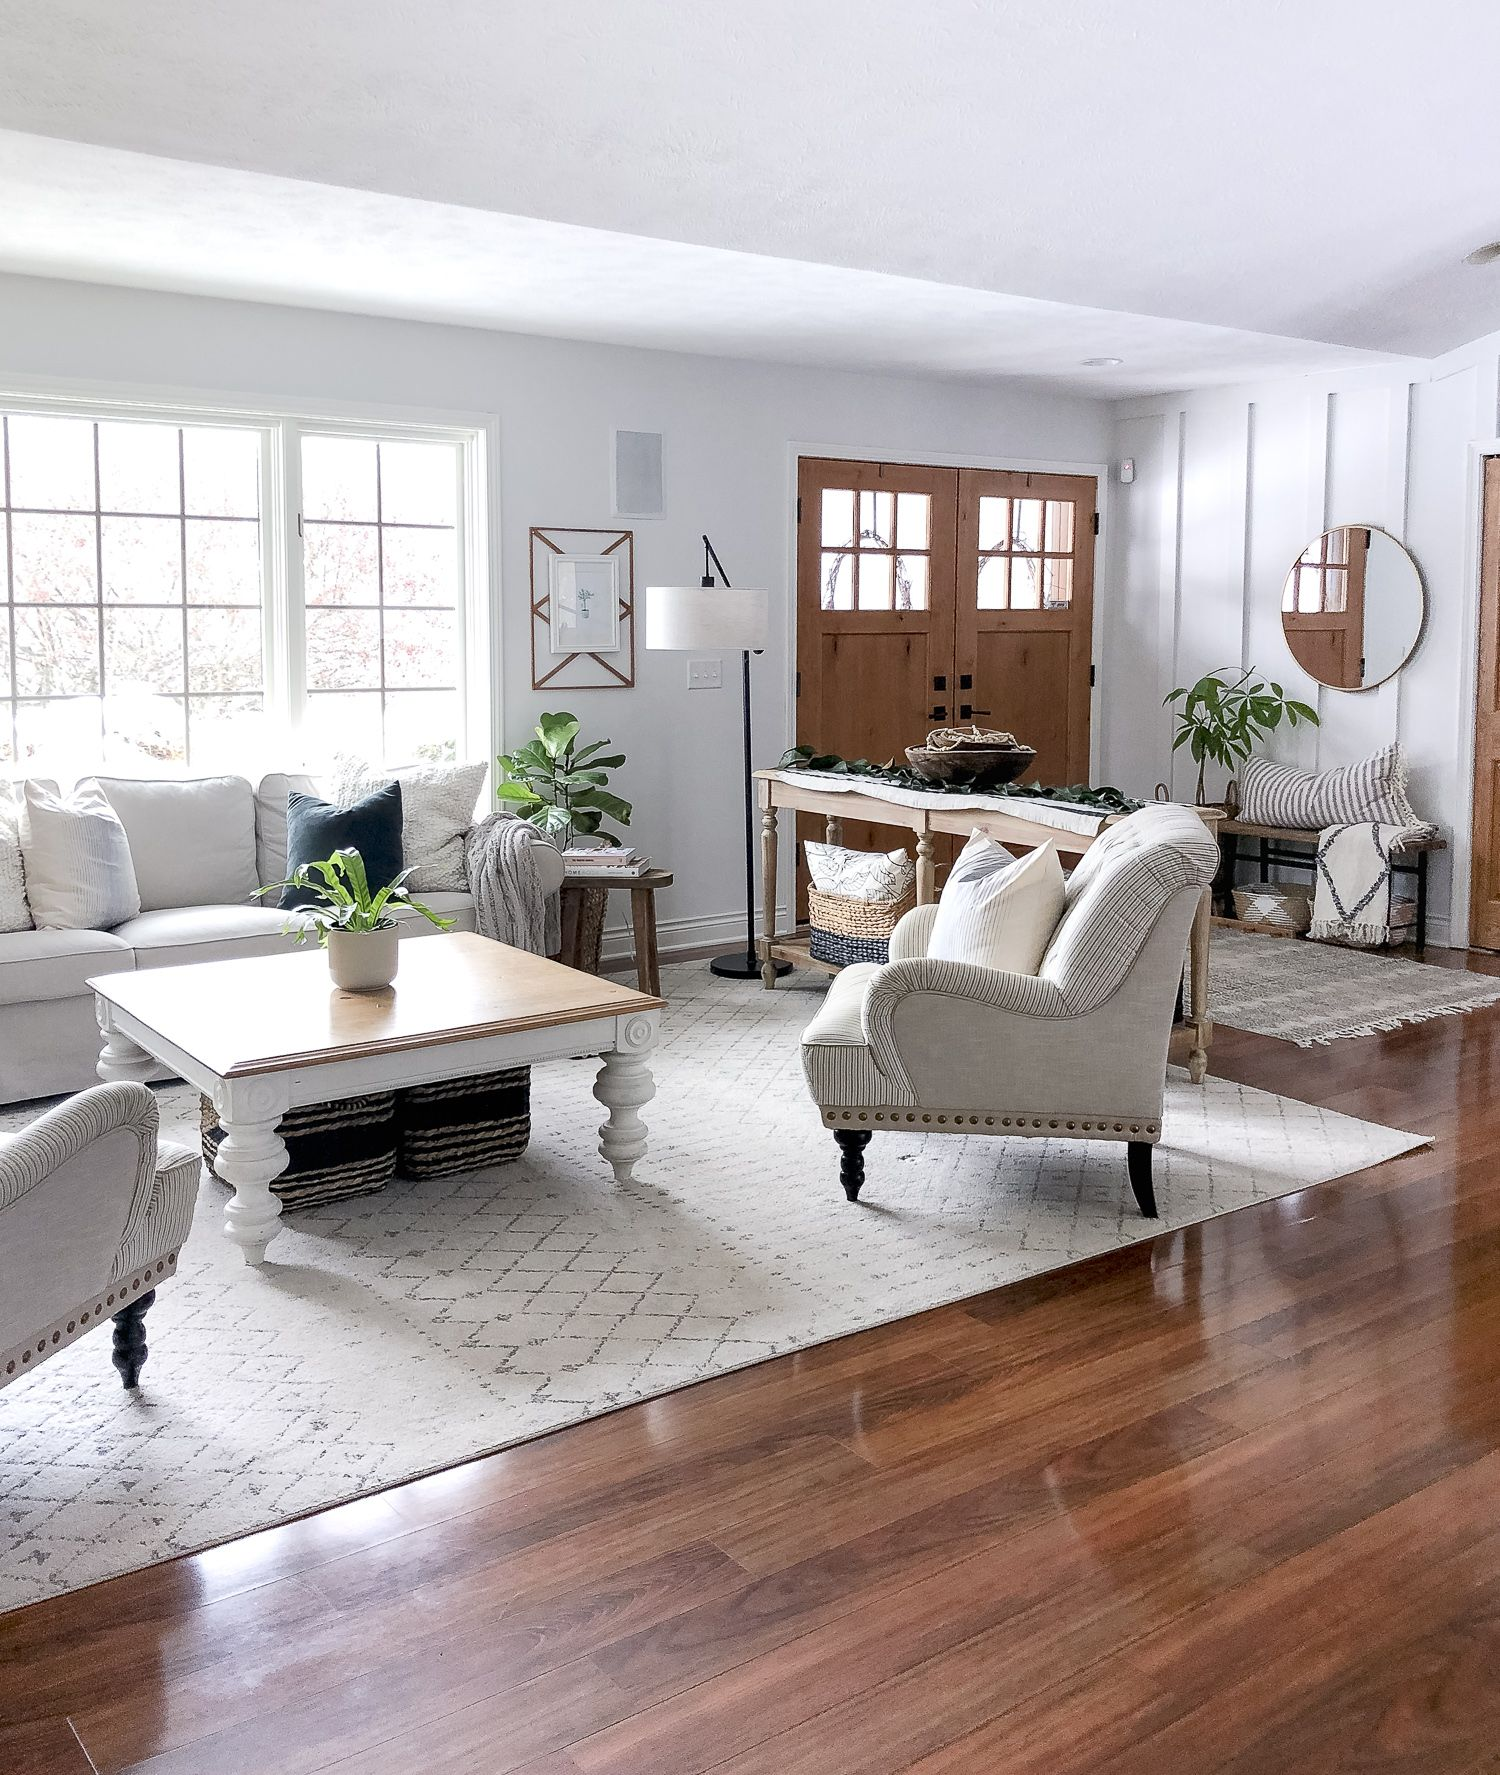 Affordable Home Furnishings: Upcycling Ideas For Affordable Home Furnishings